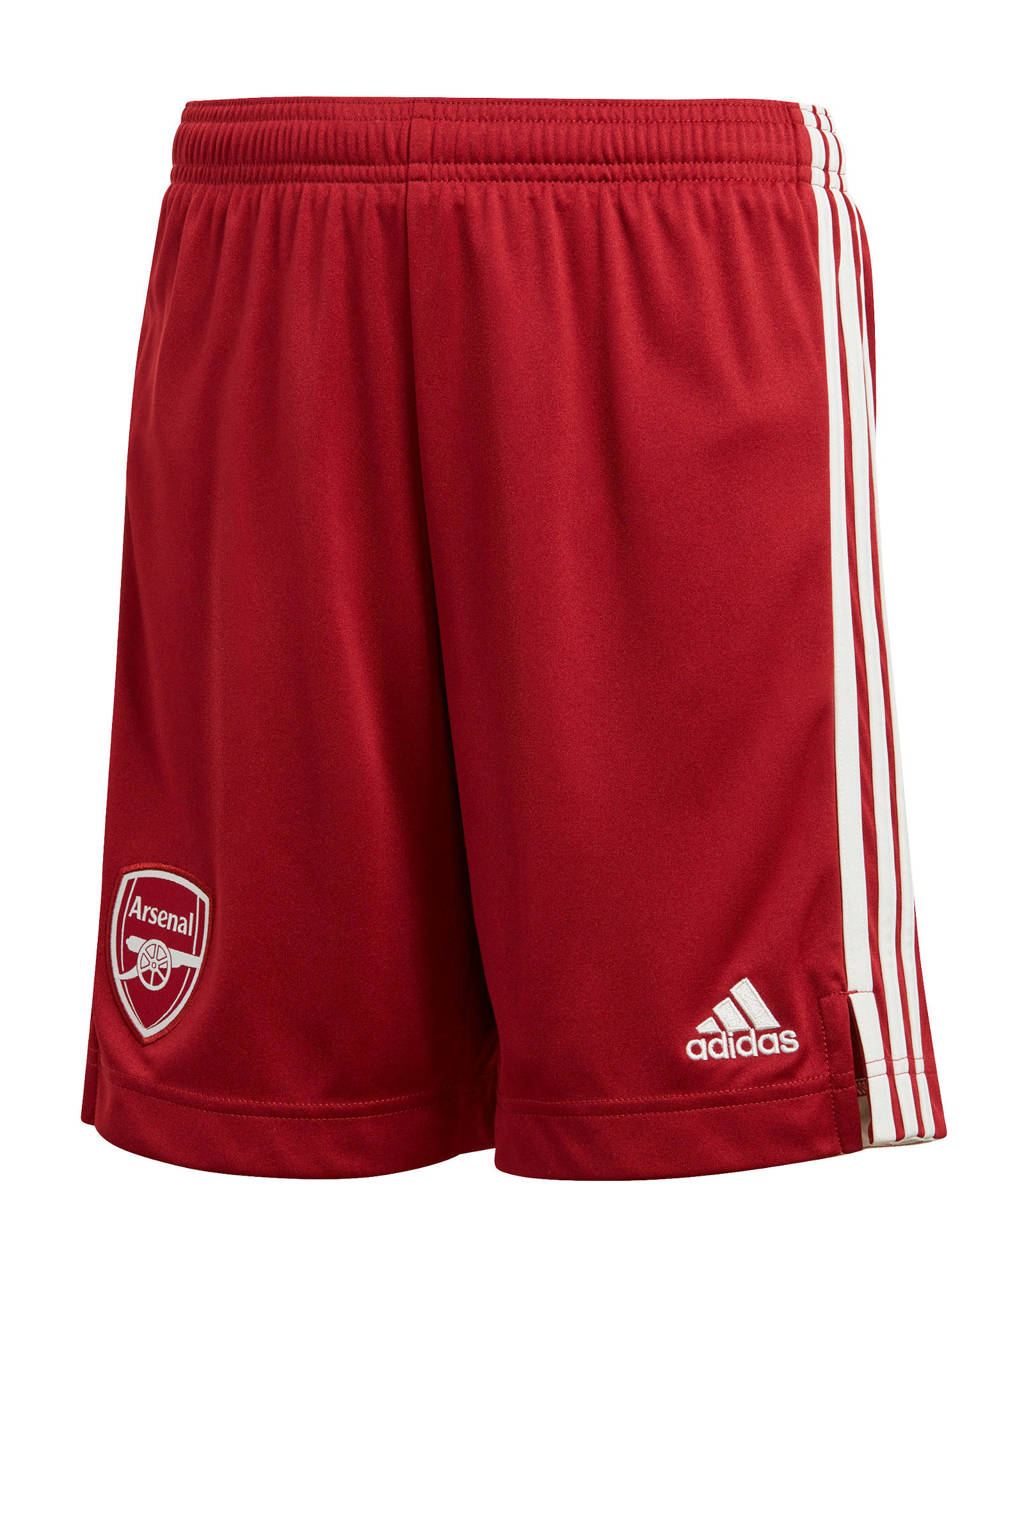 adidas Performance Junior Arsenal FC uit short rood, Rood